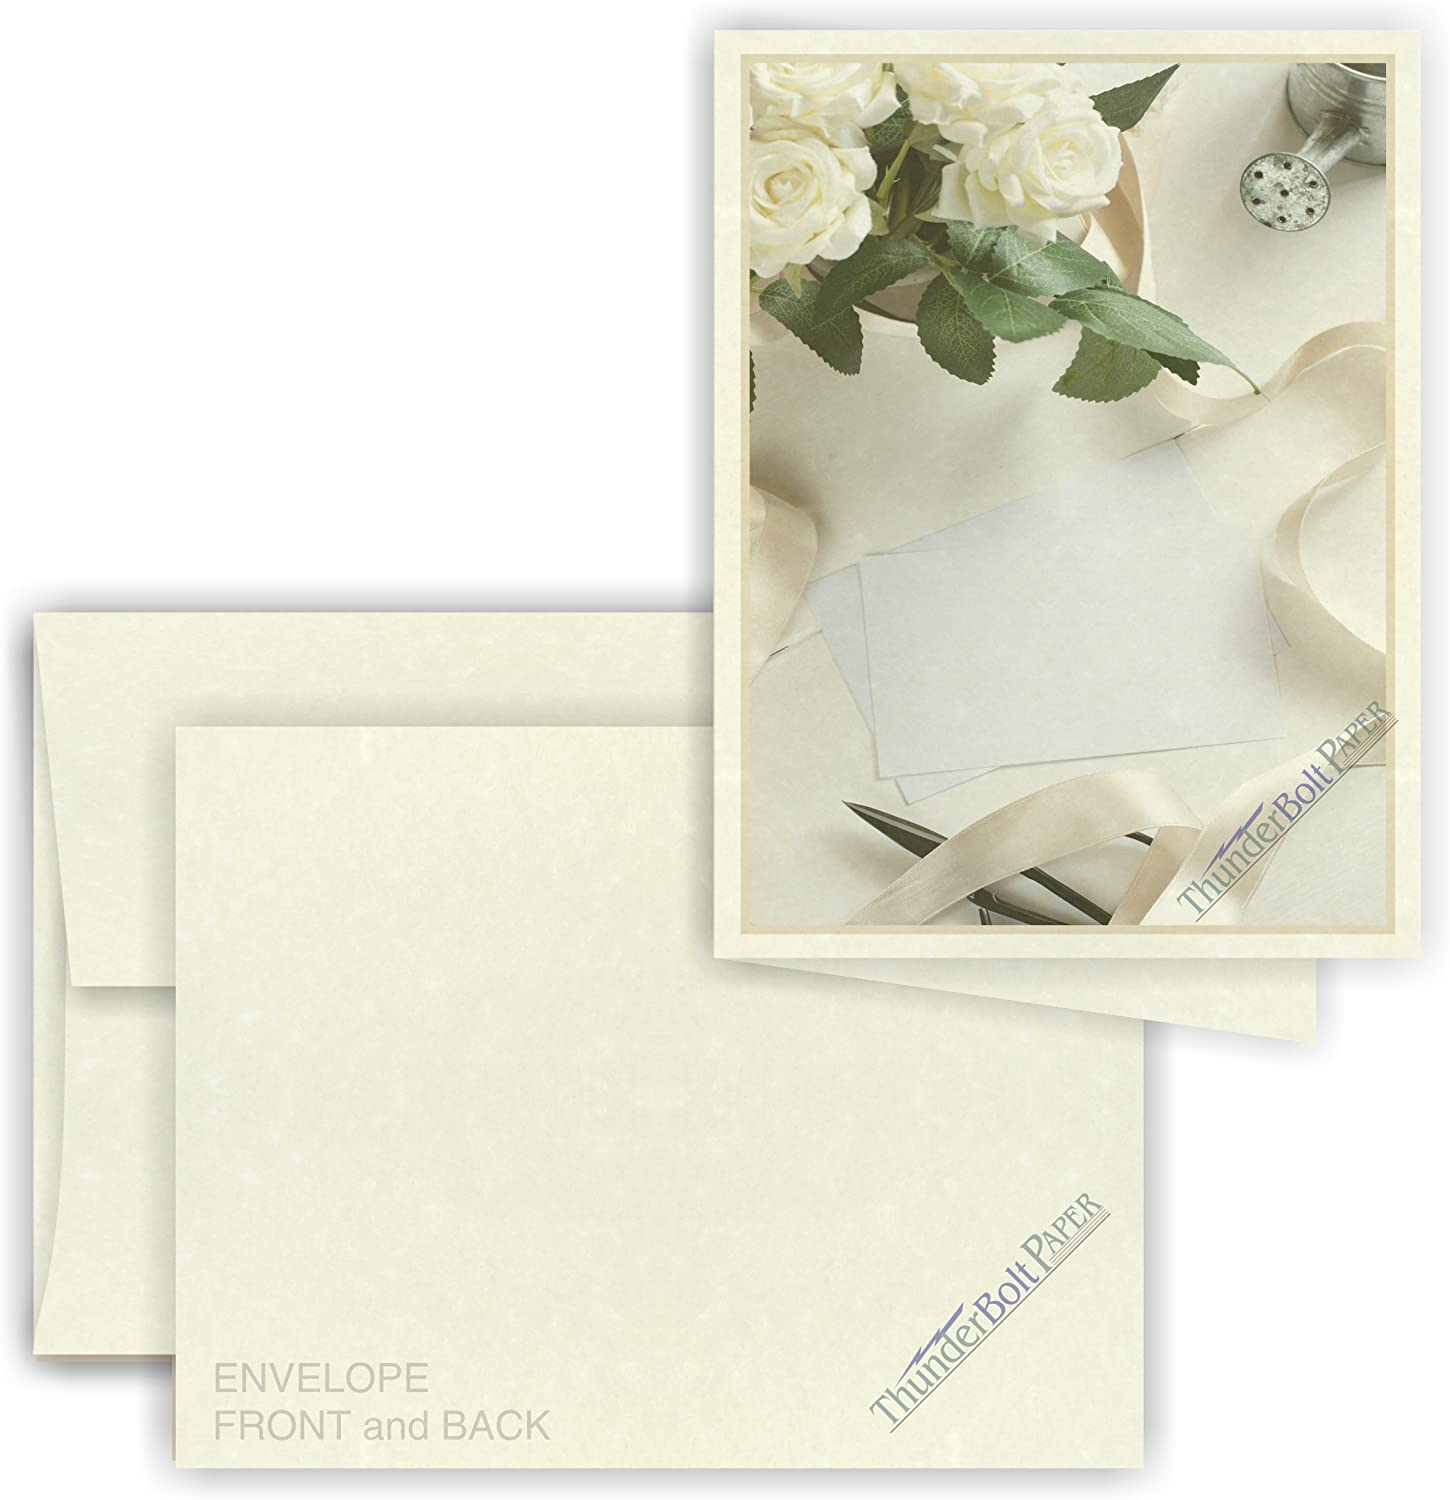 5X7 Folded Size with A-7 Envelopes - Off White Parchment - 50 Sets (10X7 Cards Scored to Fold in Half) Matching Pack - Invitations, Greeting, Thank You, Notes, Holidays, Weddings, Birthdays : Office Products